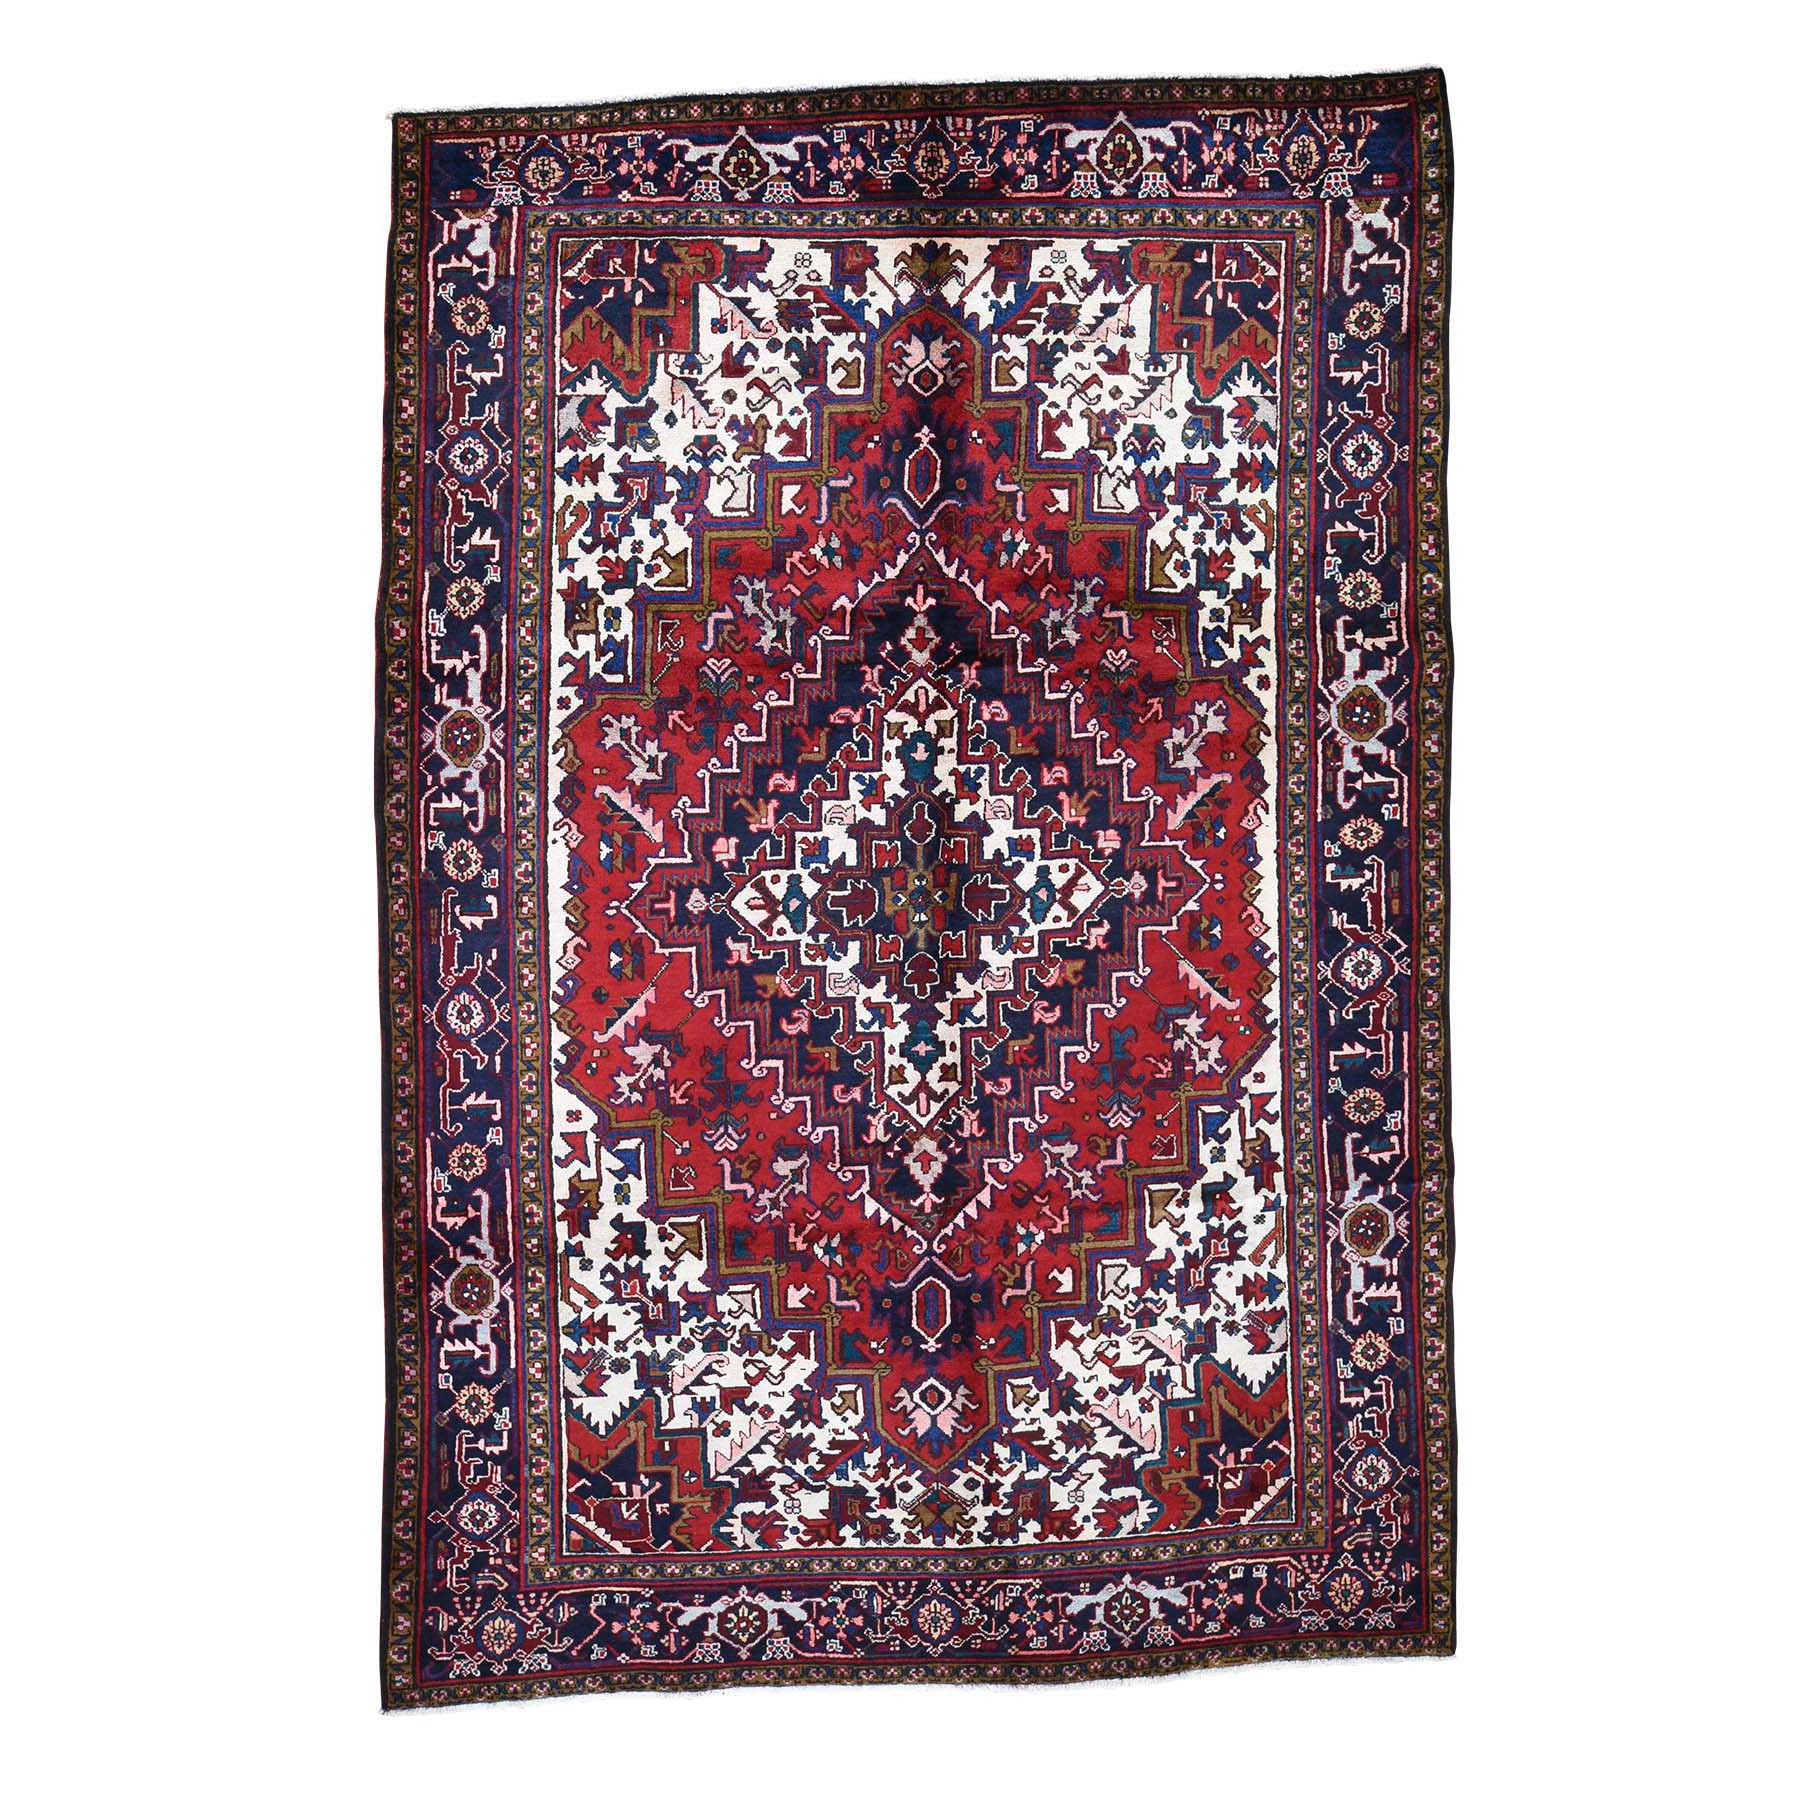 """7'6""""x11'1"""" Red & Ivory Semi Antique Heriz Excellent Condition Hand-Knotted Oriental Rug"""